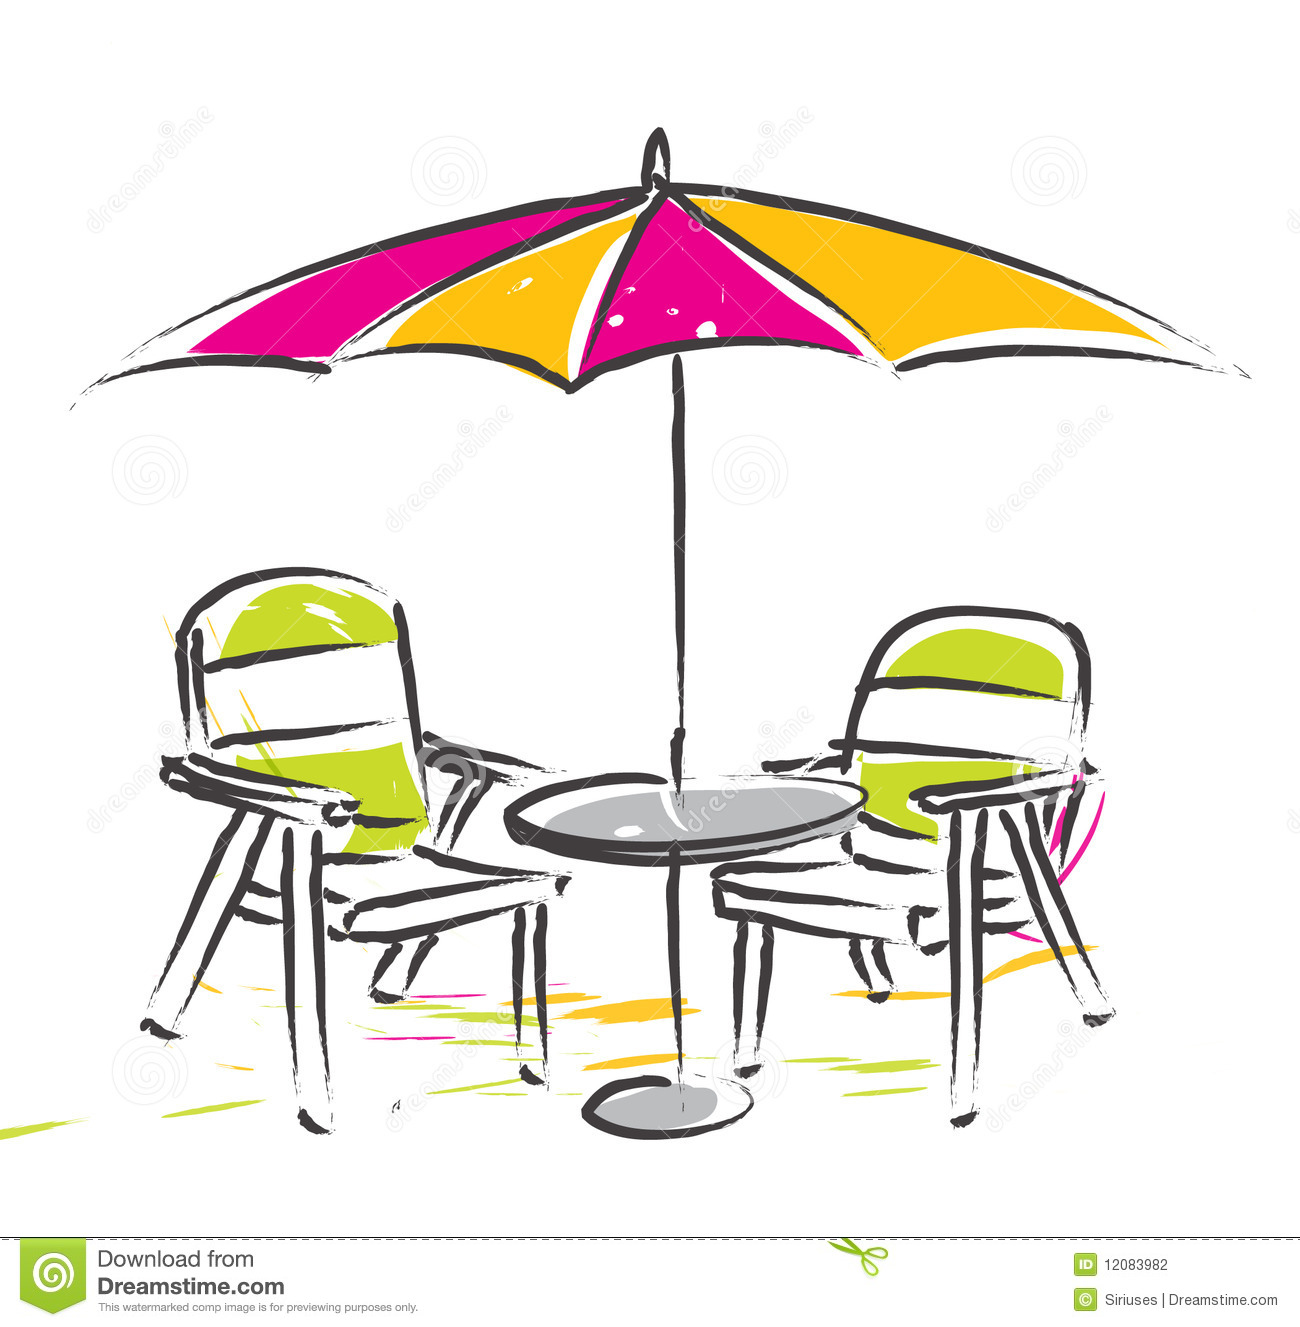 chair king umbrellas outdoor swing covers drawing beach profiles related keywords